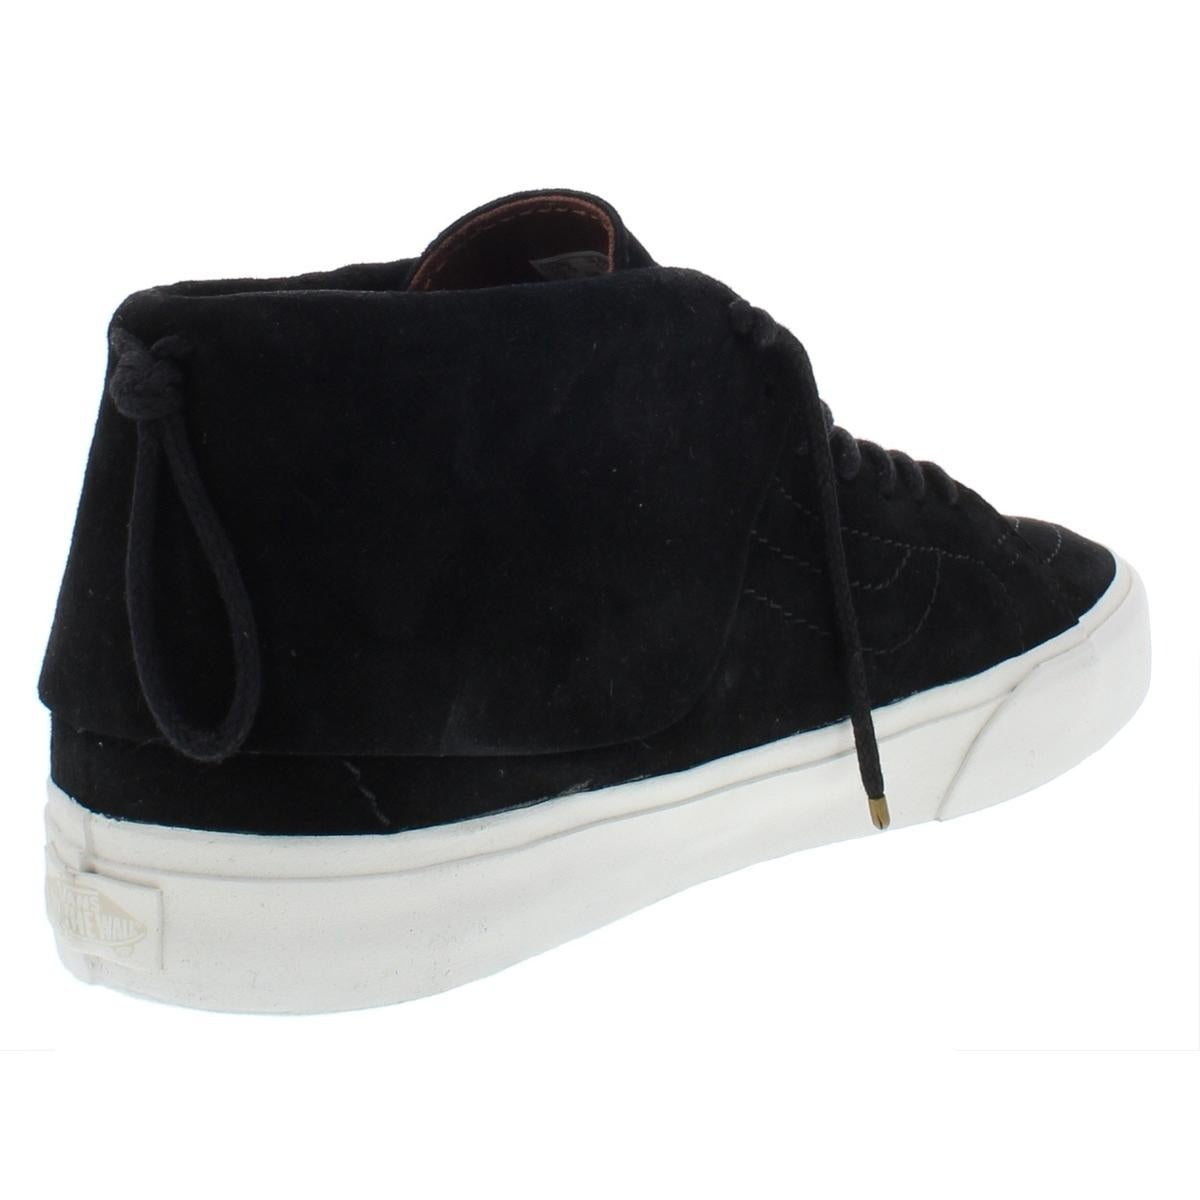 01b47e022f Shop Vans Mens Sk8 Mid Moc CA Skateboarding Shoes Suede Sport - 10.5 Medium  (D) - Free Shipping Today - Overstock - 28034648